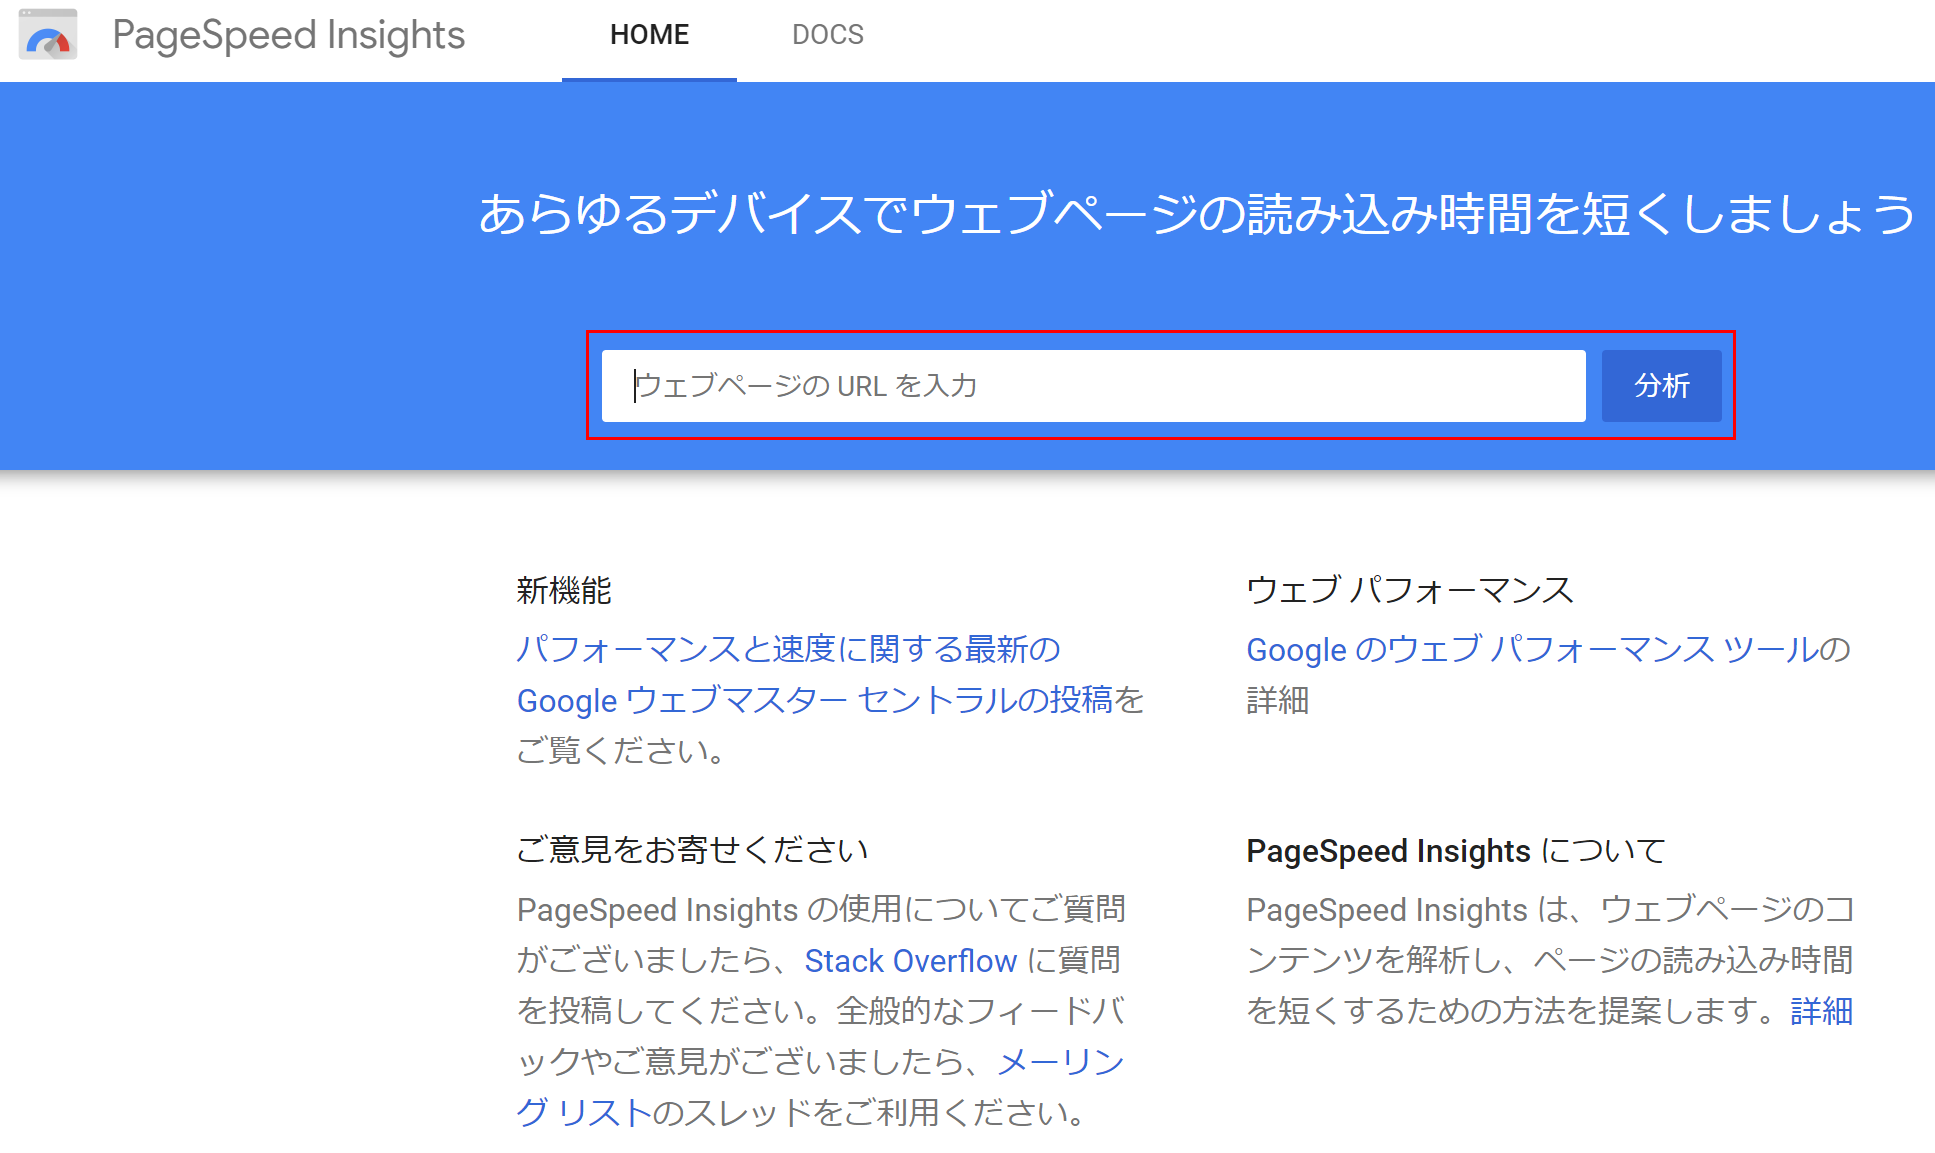 PageSpeed Insightsのトップ画面の画像です。